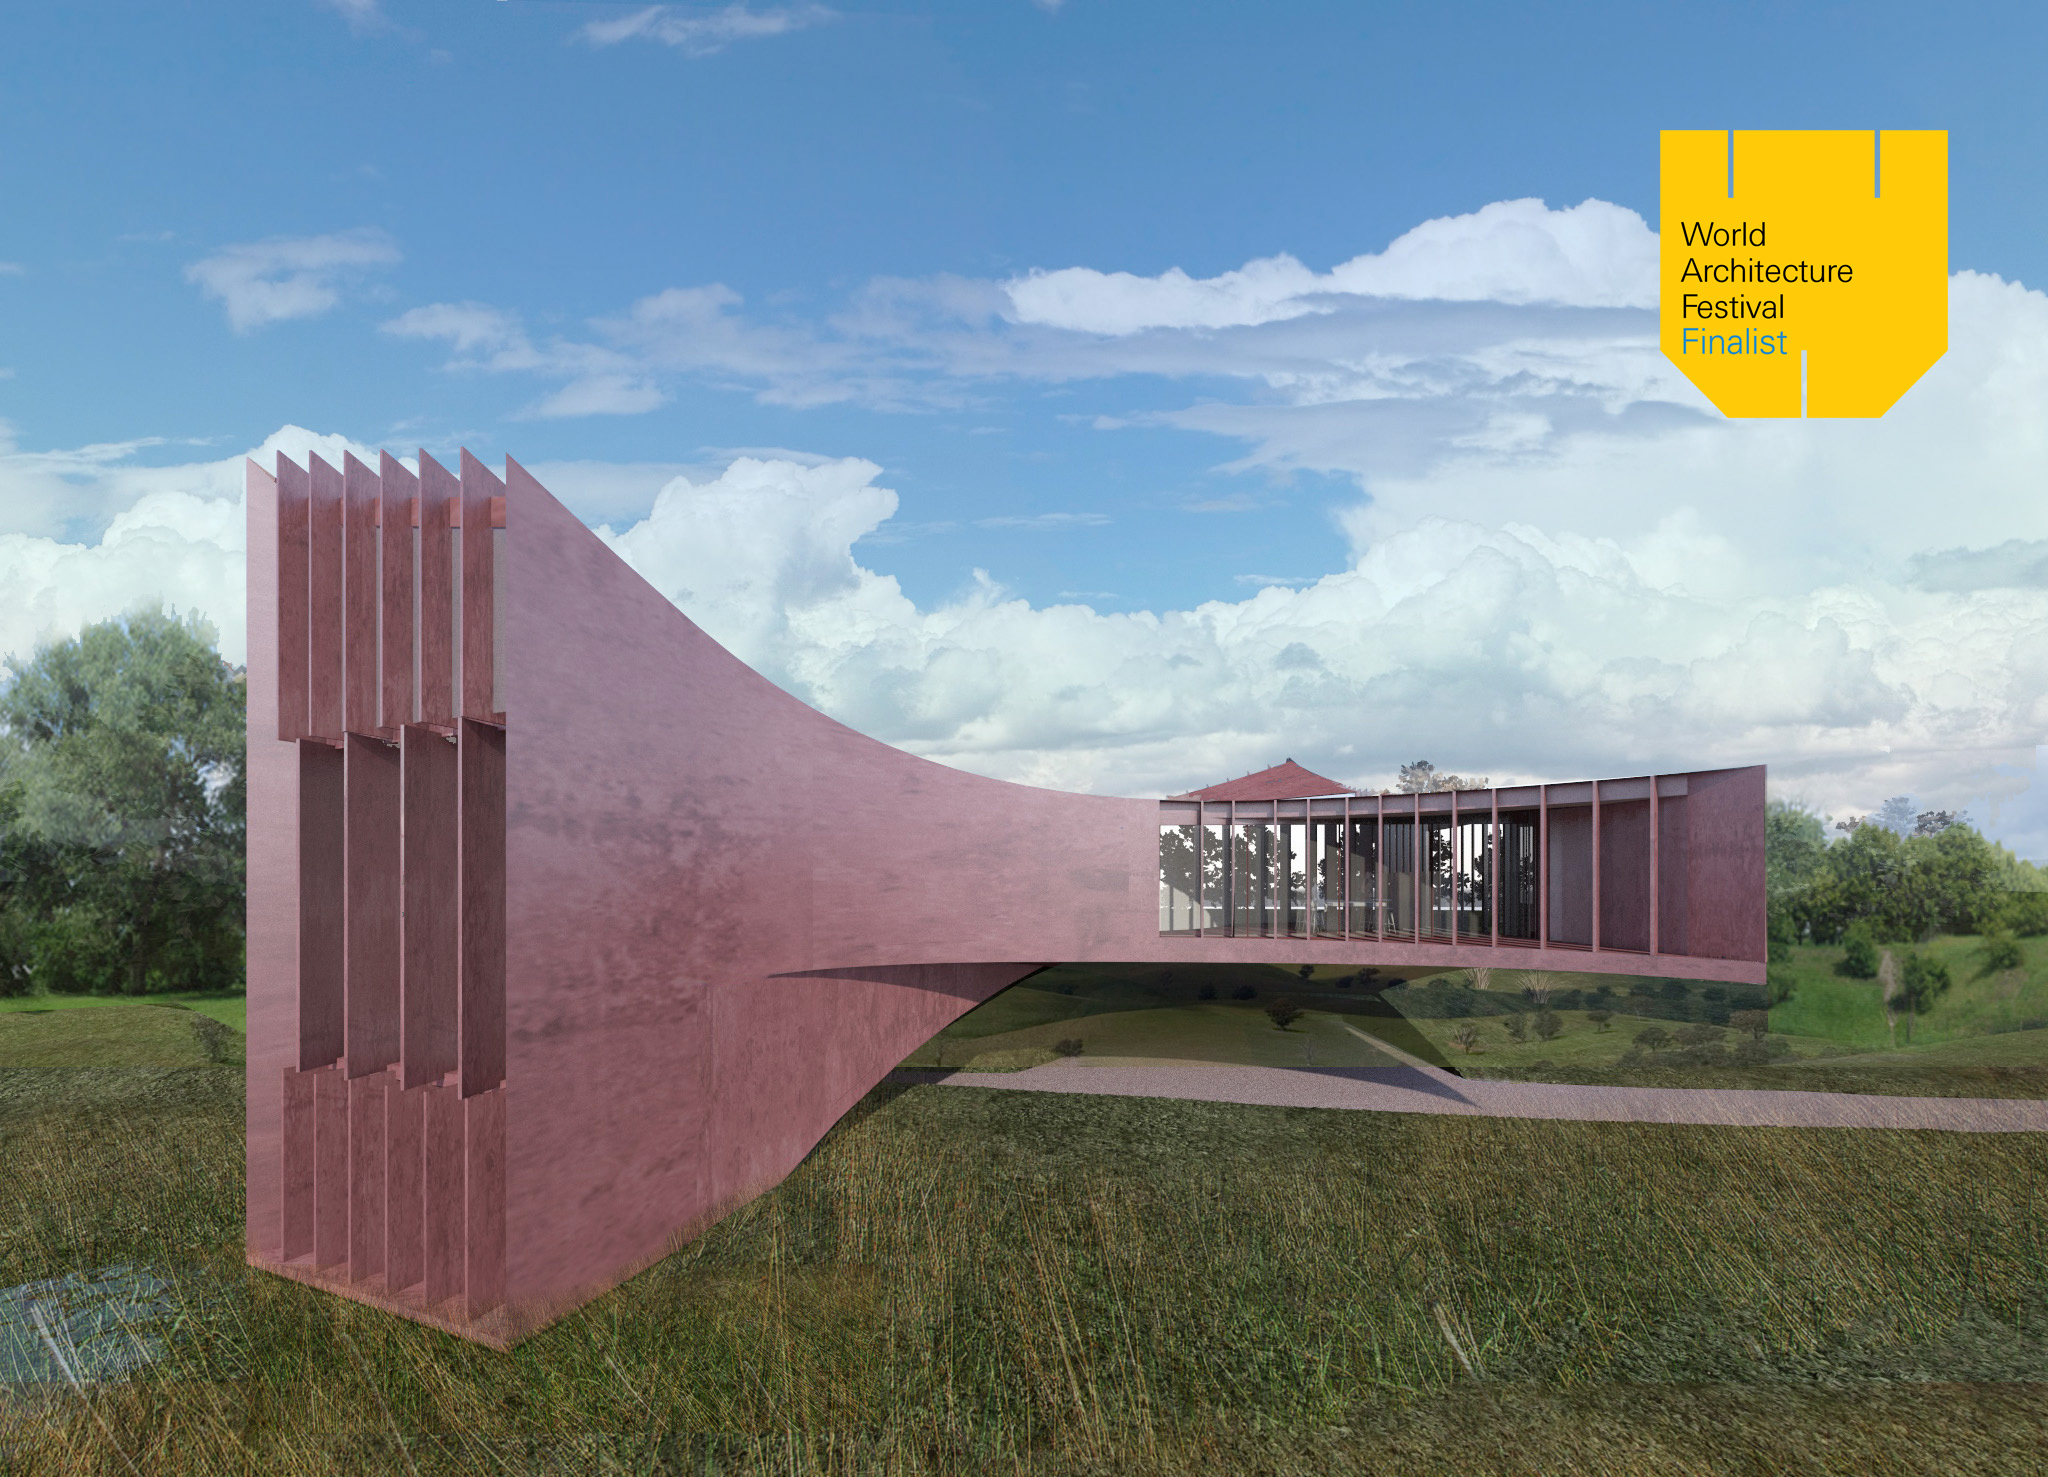 """Villa Sigma  has been selected as a  finalist  for  WAF Awards 2017  """" Best Building of 2017 """" #futureprojects    Architecture projects from 68 different countries have been shortlisted for awards at this year's World Architecture Festival. The winners will be announced in Berlin in November at the World Architecture Festival 2017."""